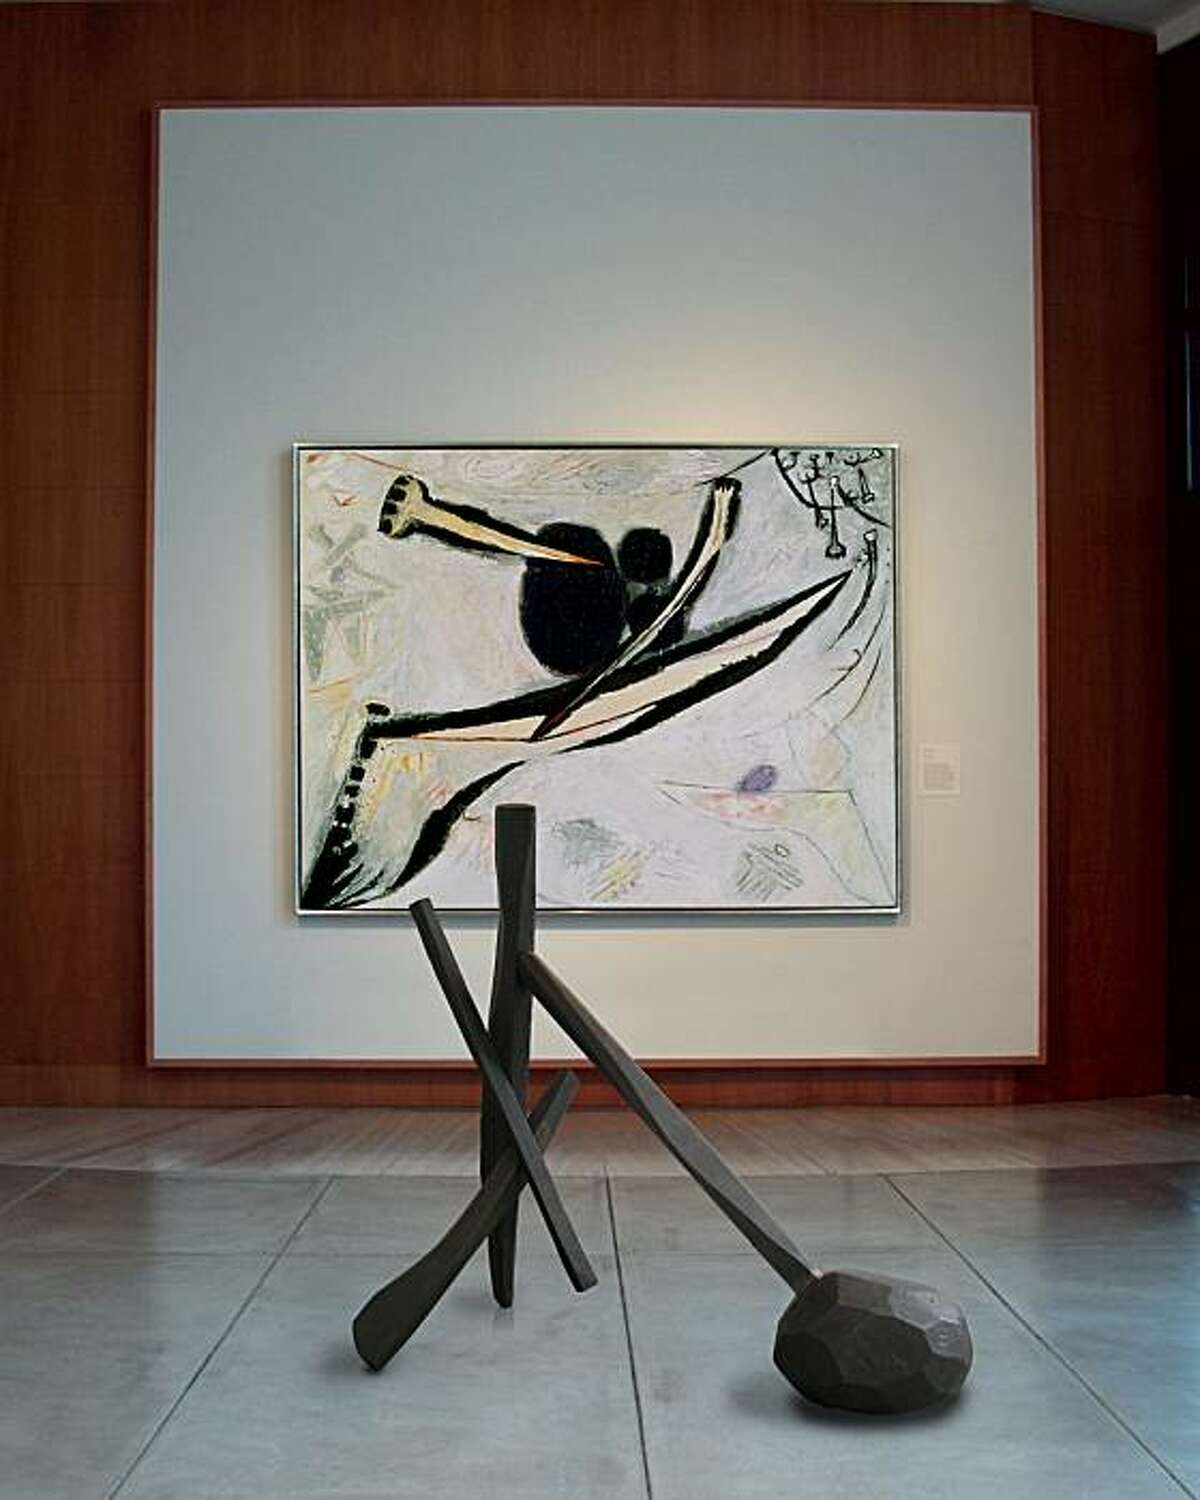 """""""Victim"""" (1962), bronze sculpture by Isamu Nogochi, shown in front of """"Fall 1964"""" (1964) oil on canvas by Frank Lobdell at Stanford's Cantor Center for Visual Arts. 60.5"""" x 60"""" x 29"""""""